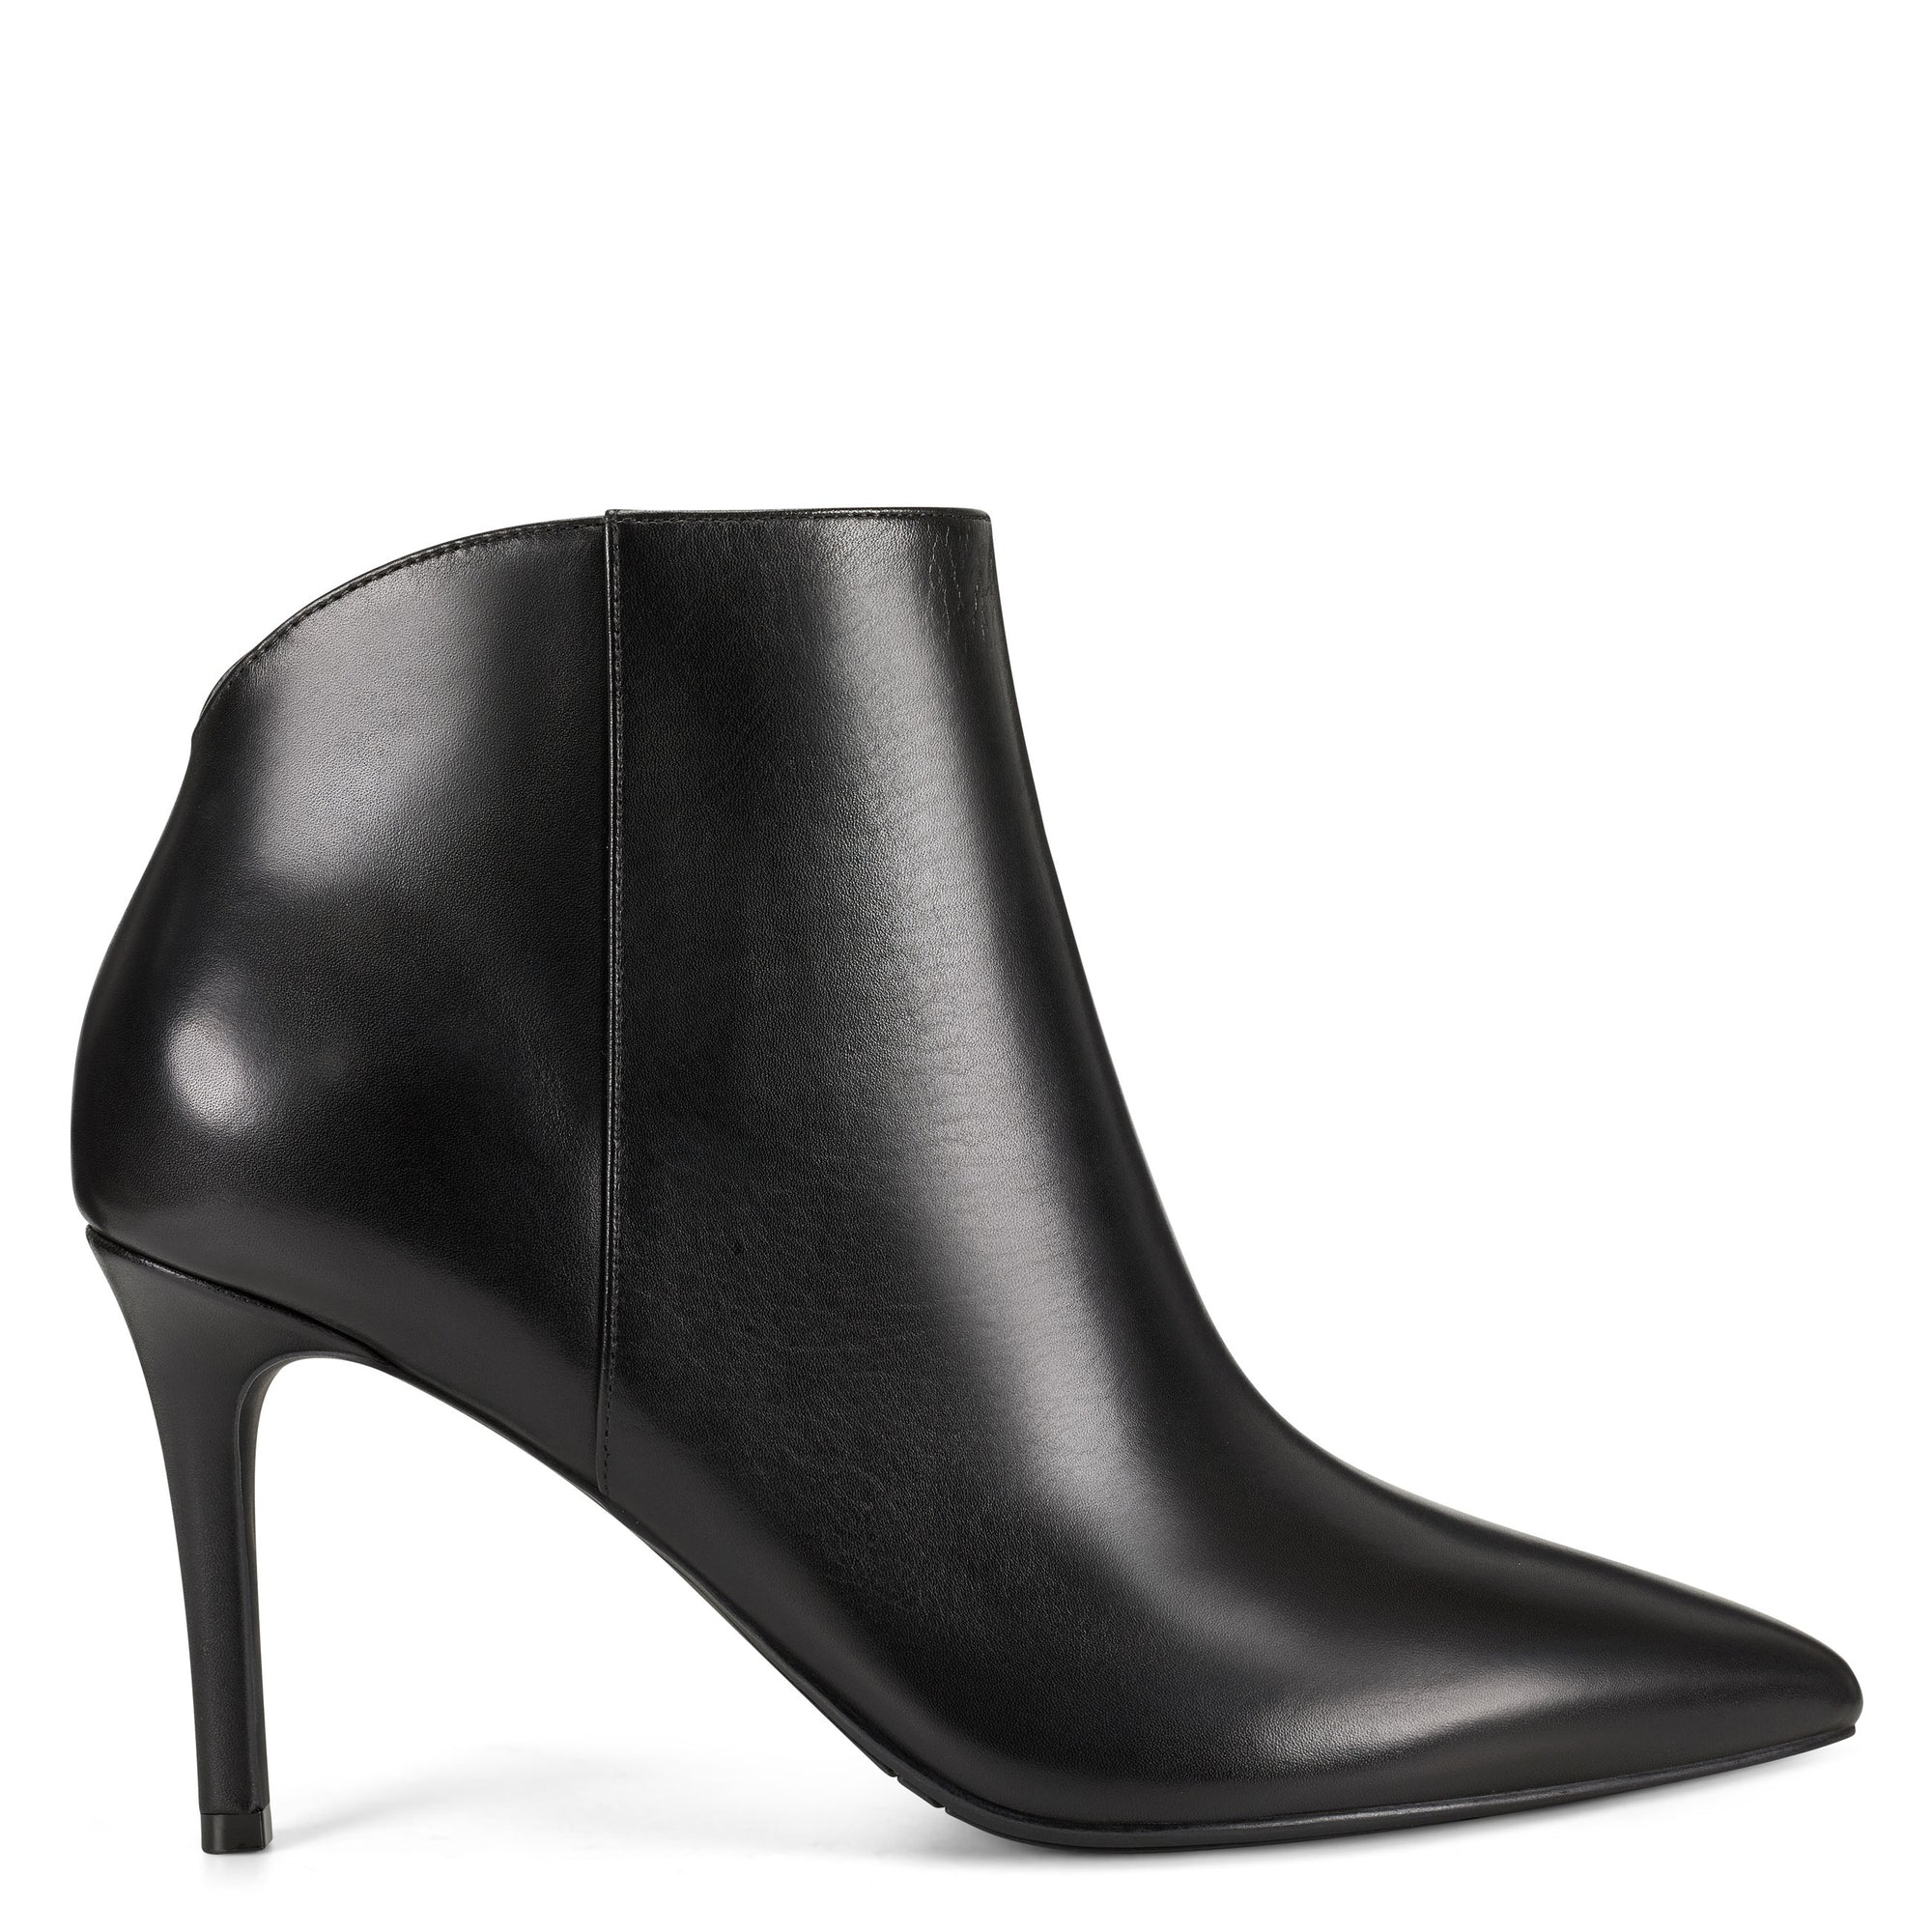 Feina Dress Booties